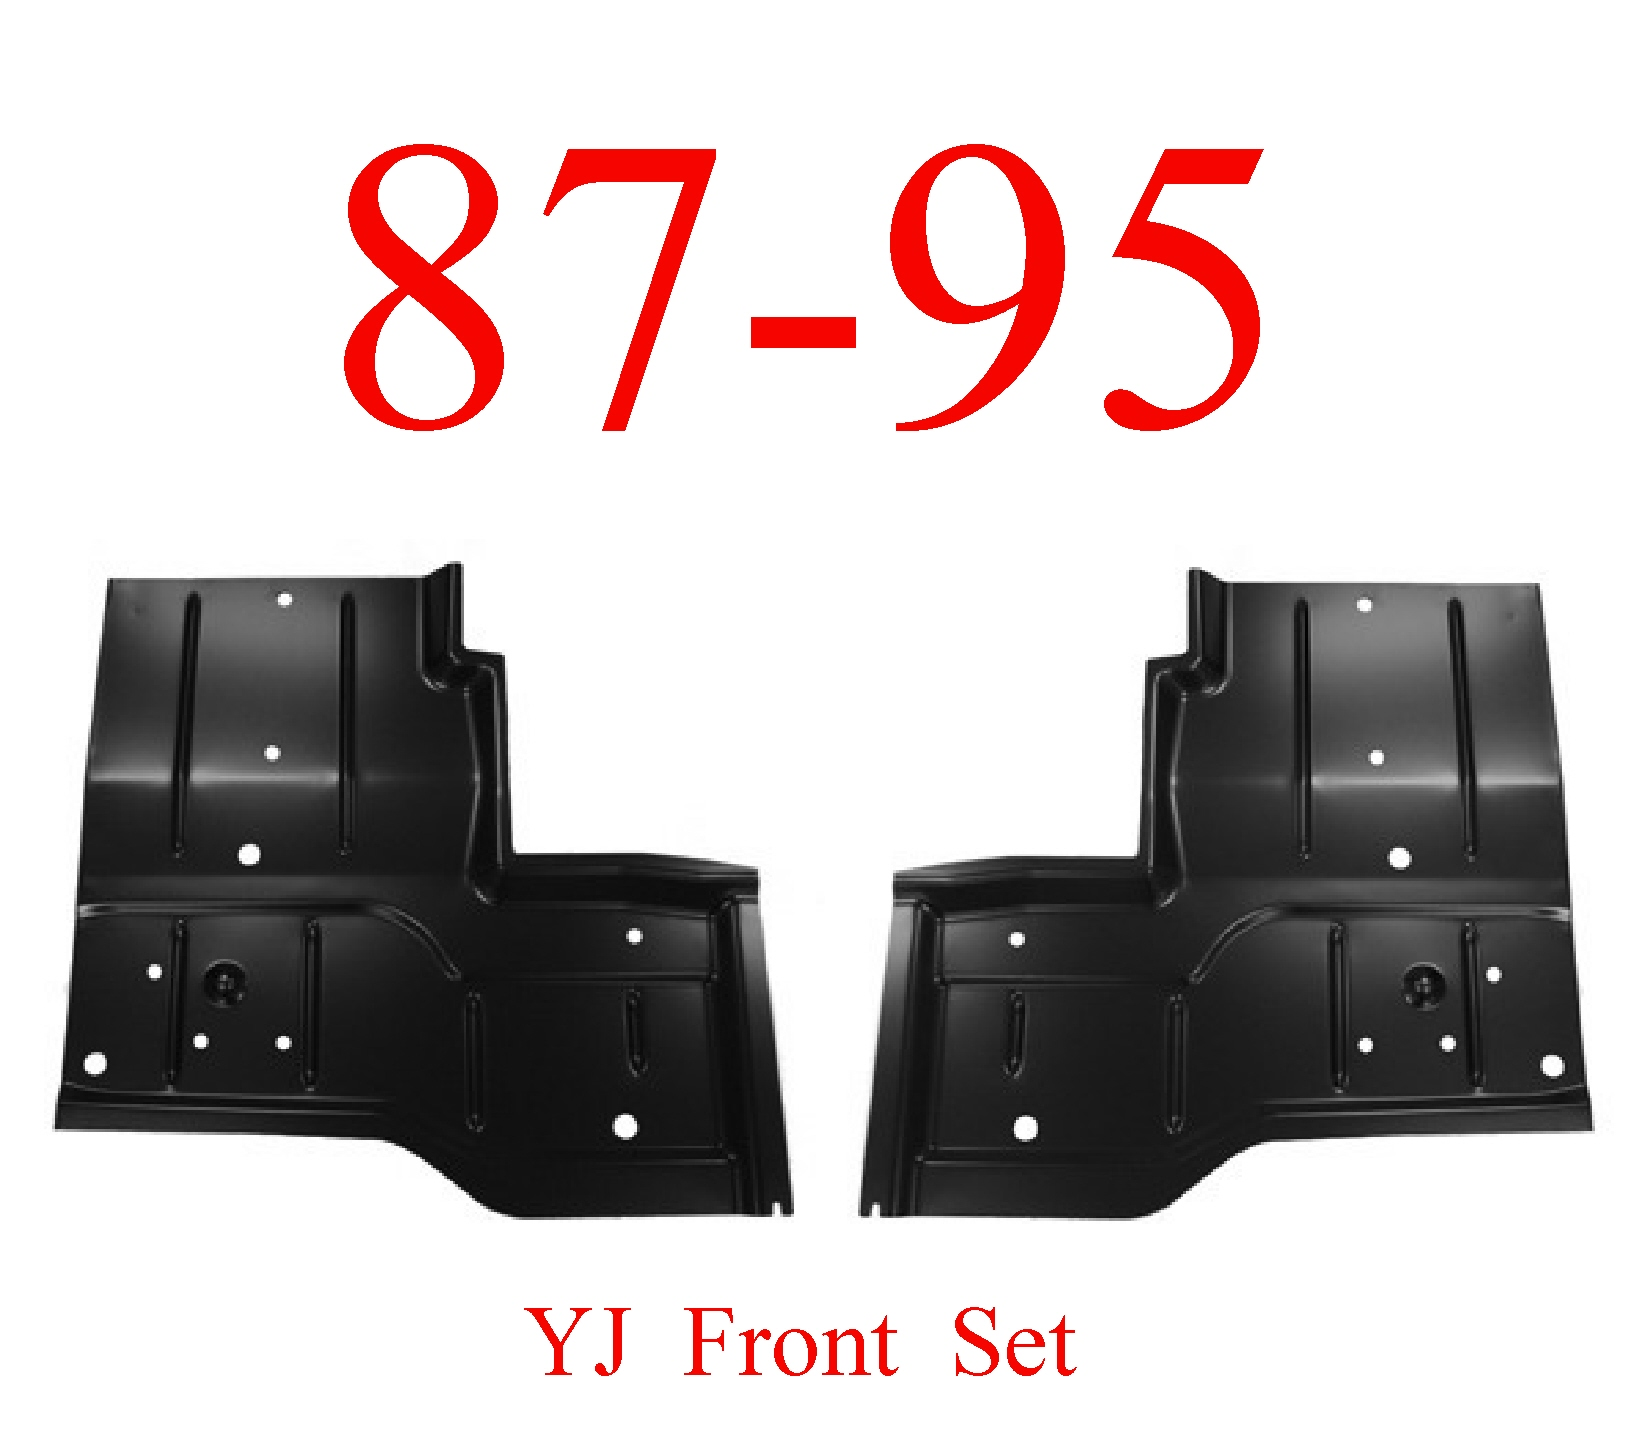 87-95 Wrangler YJ Rear Floor Pan Set